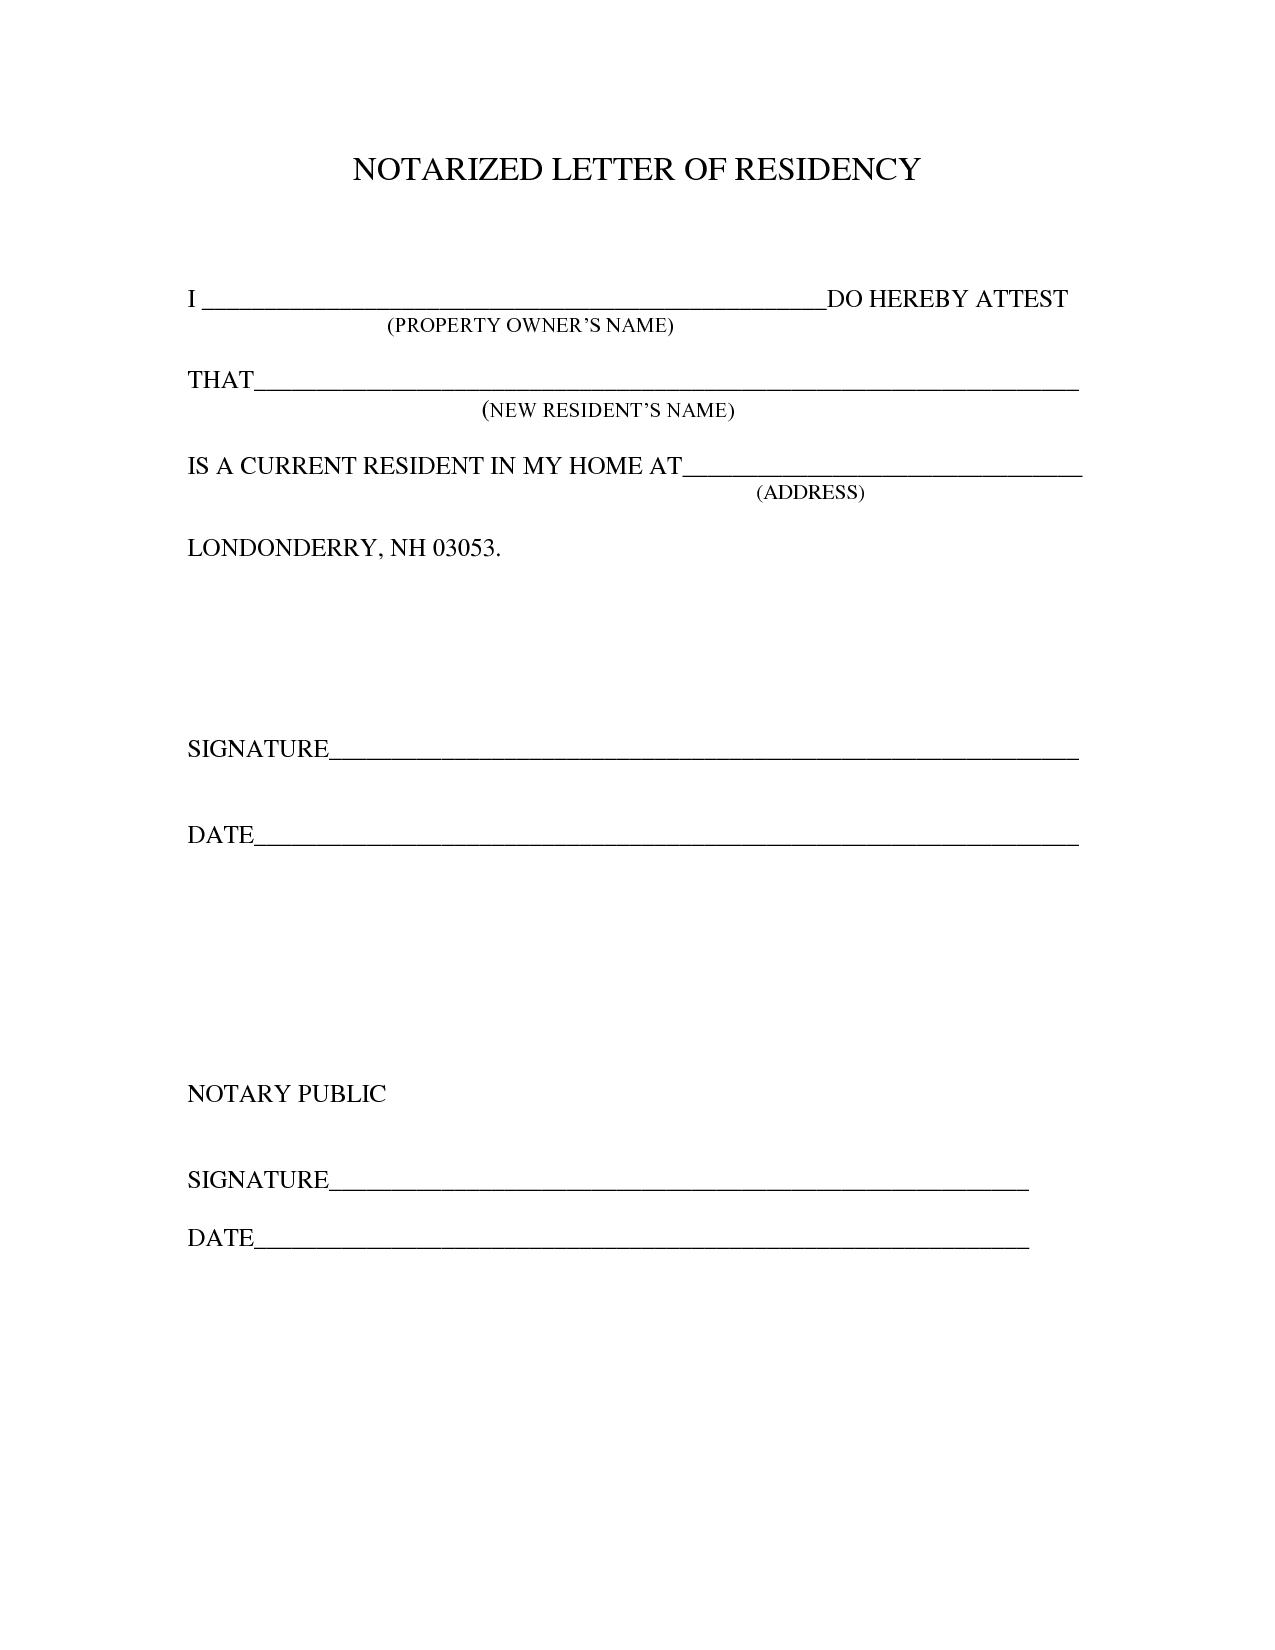 Doc.#585430: Sample Notary Statements – 8 Notarized Letter ...